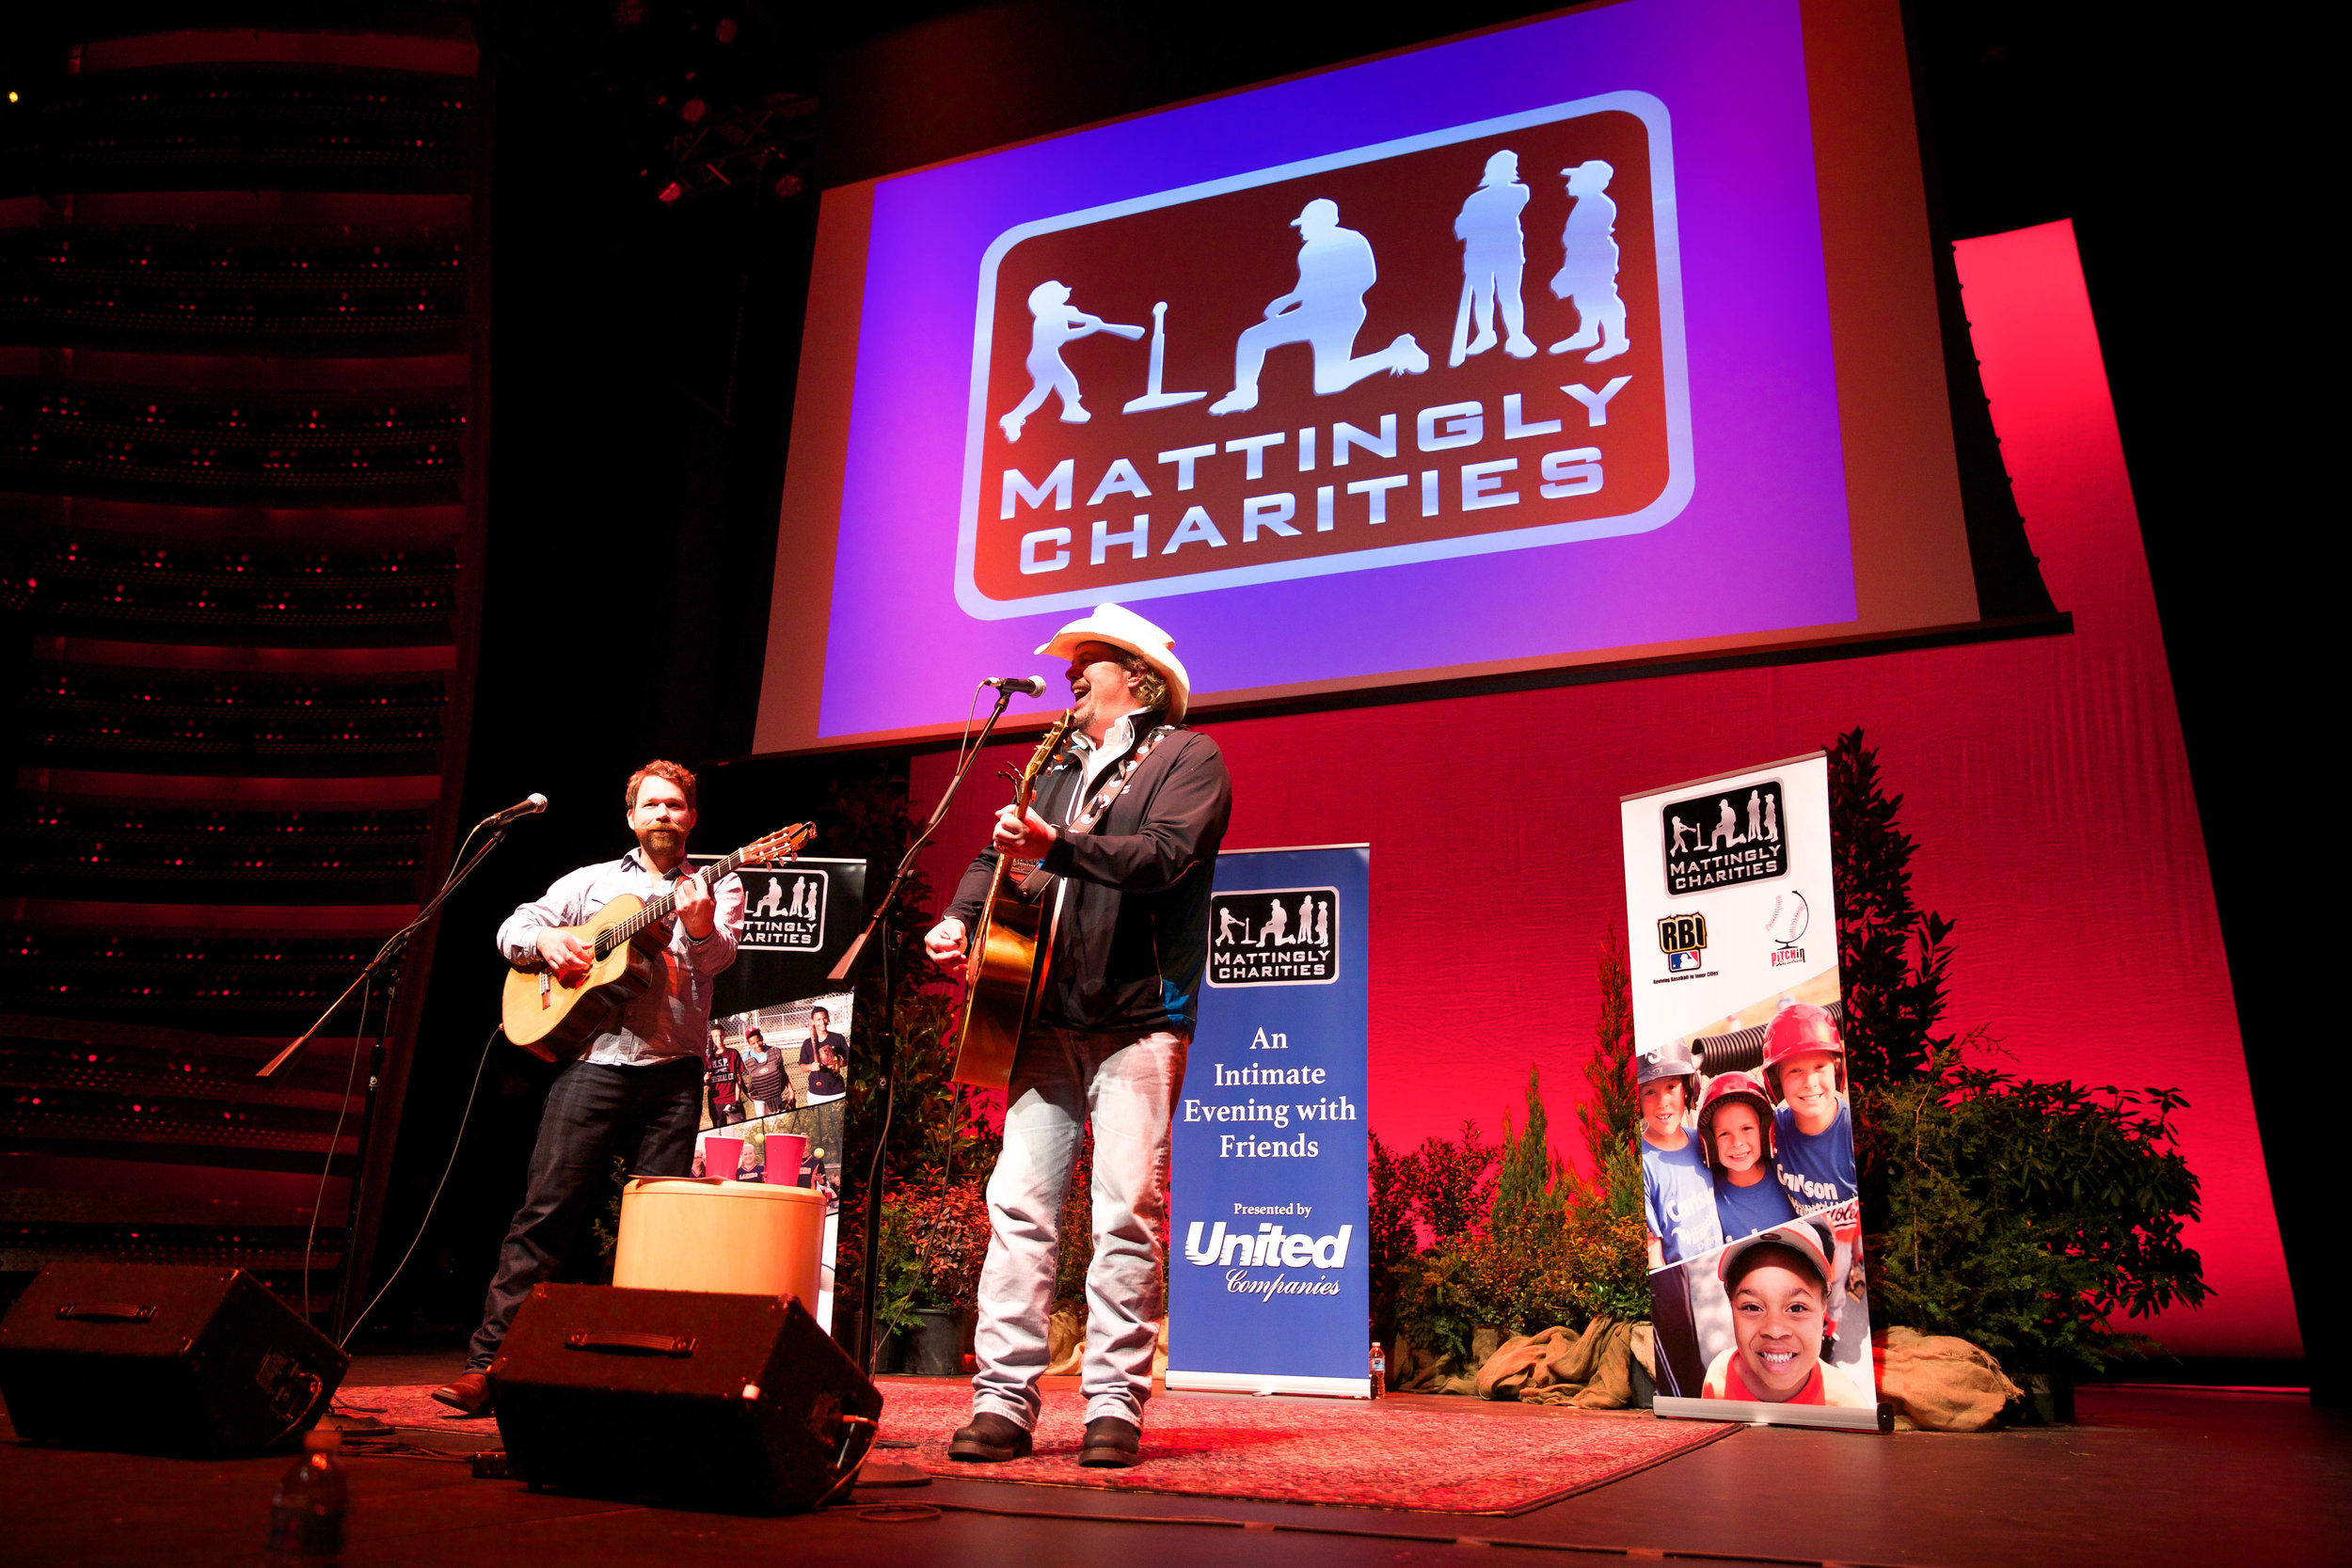 Mattingly Foundation 12-3-15 (5 of 9).jpg